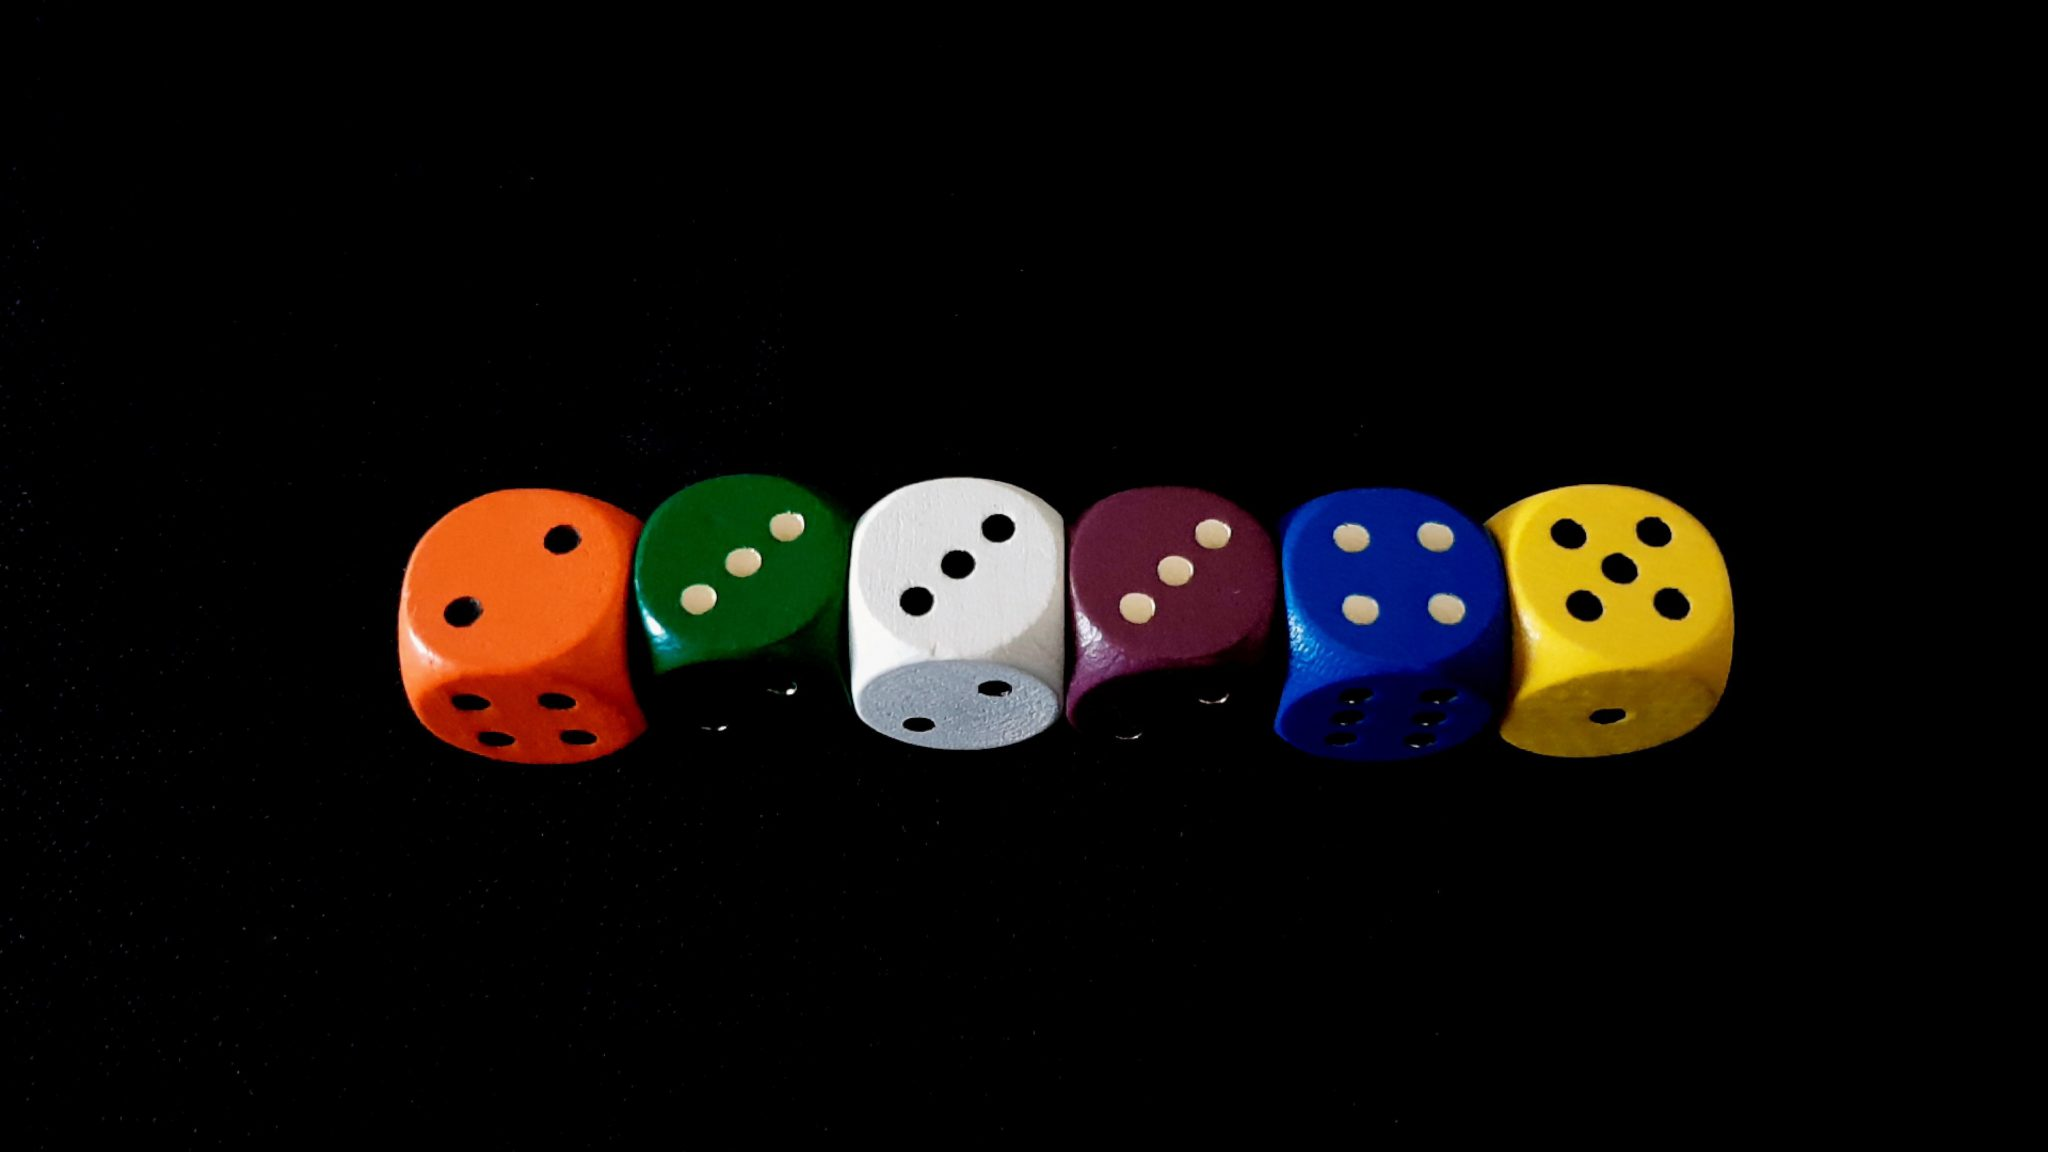 Rolled dice